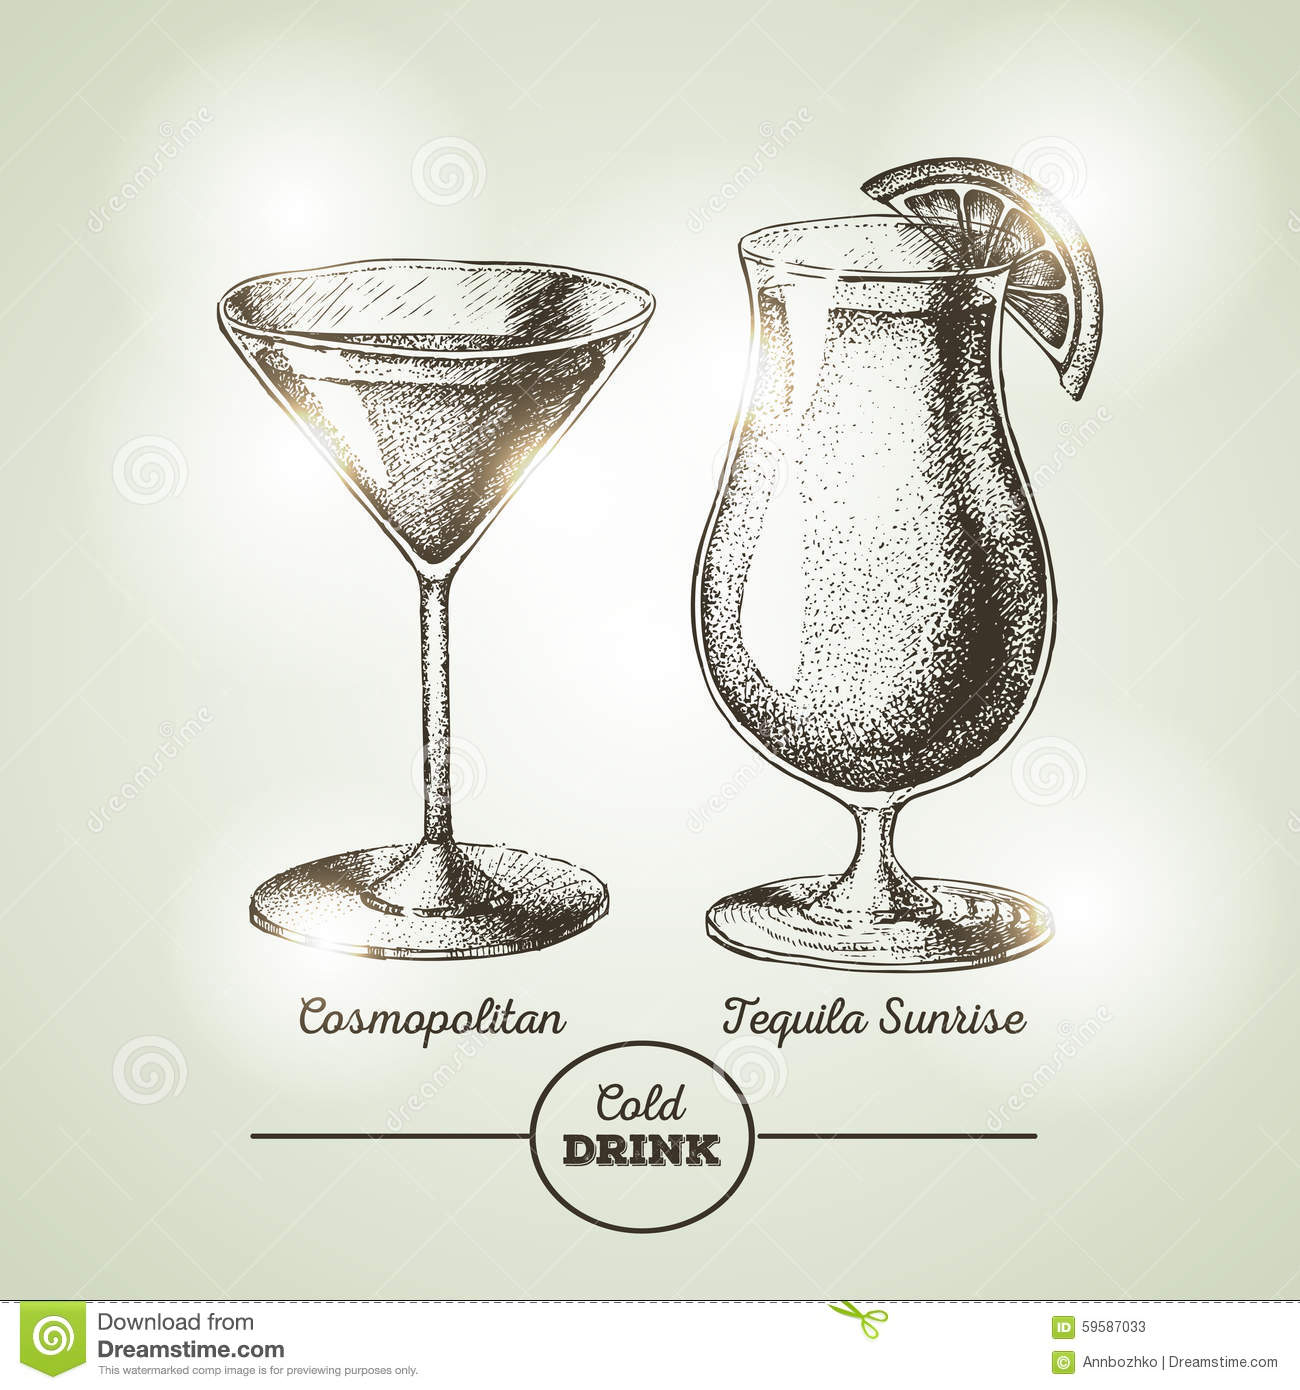 Cocktail sketch stock vector image 59587033 for Sketch online free